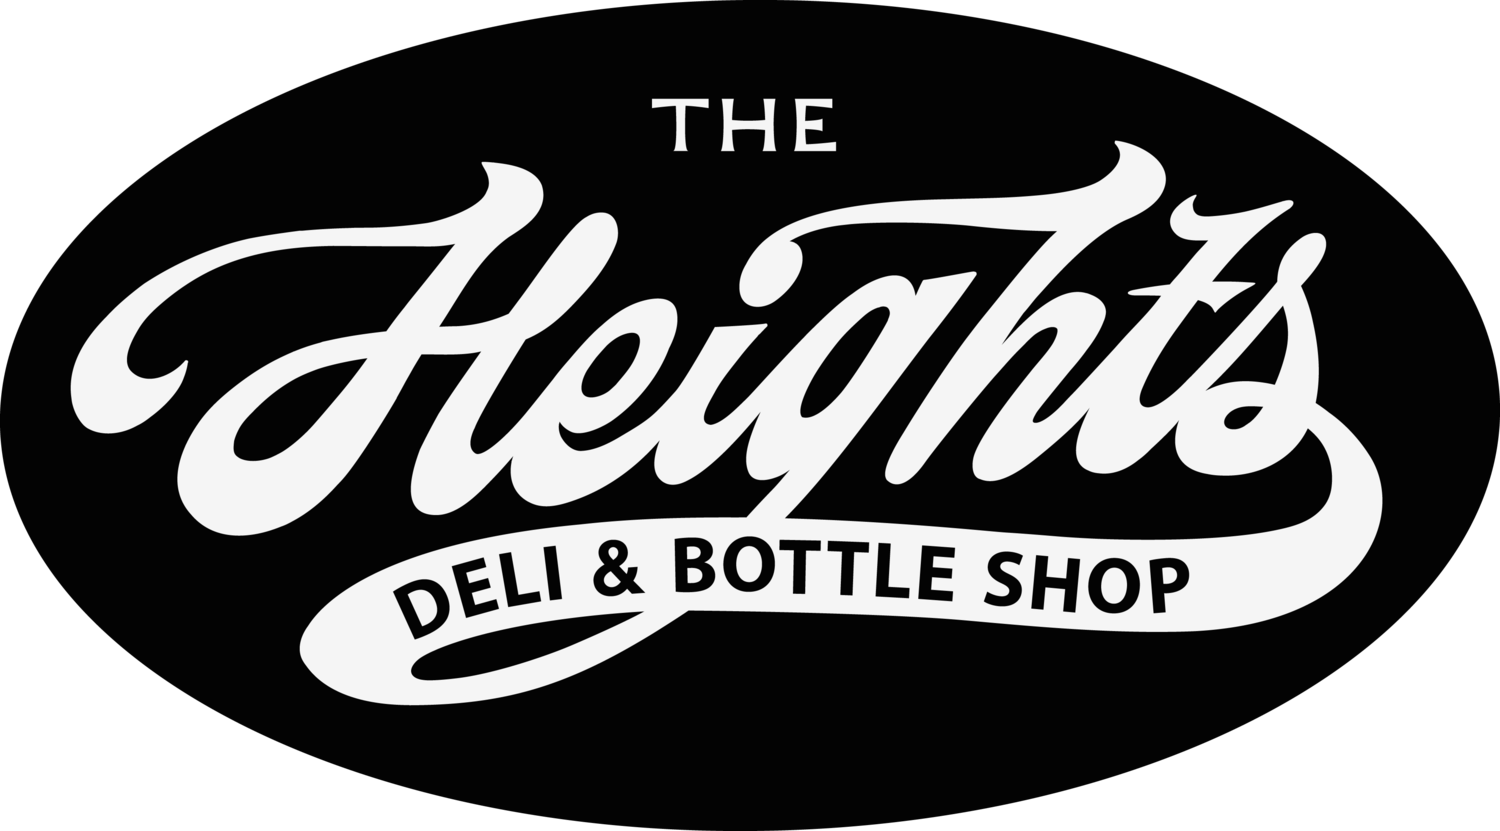 The Heights Deli & Bottle Shop